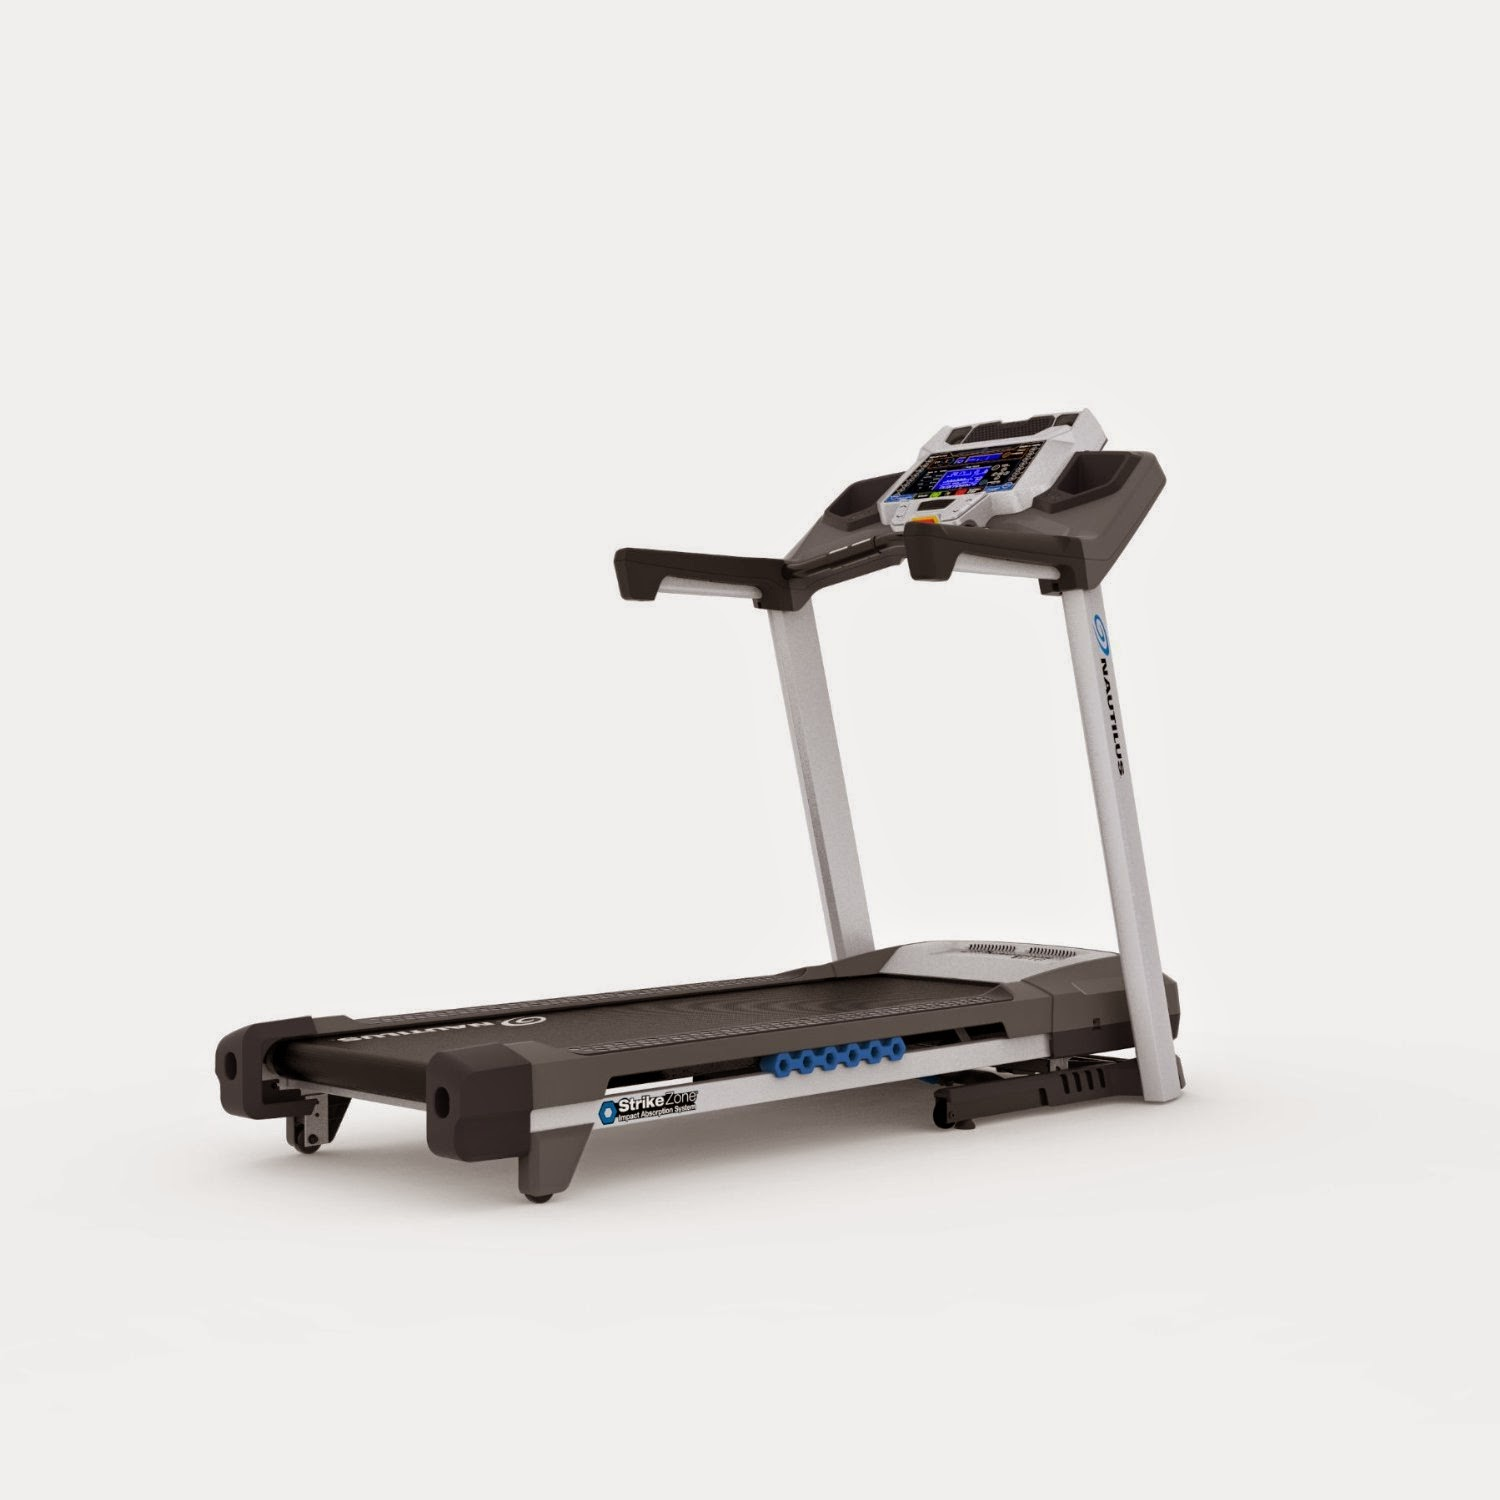 Nautilus T616 Treadmill, review and compare with Schwinn 870, difference in frame color style